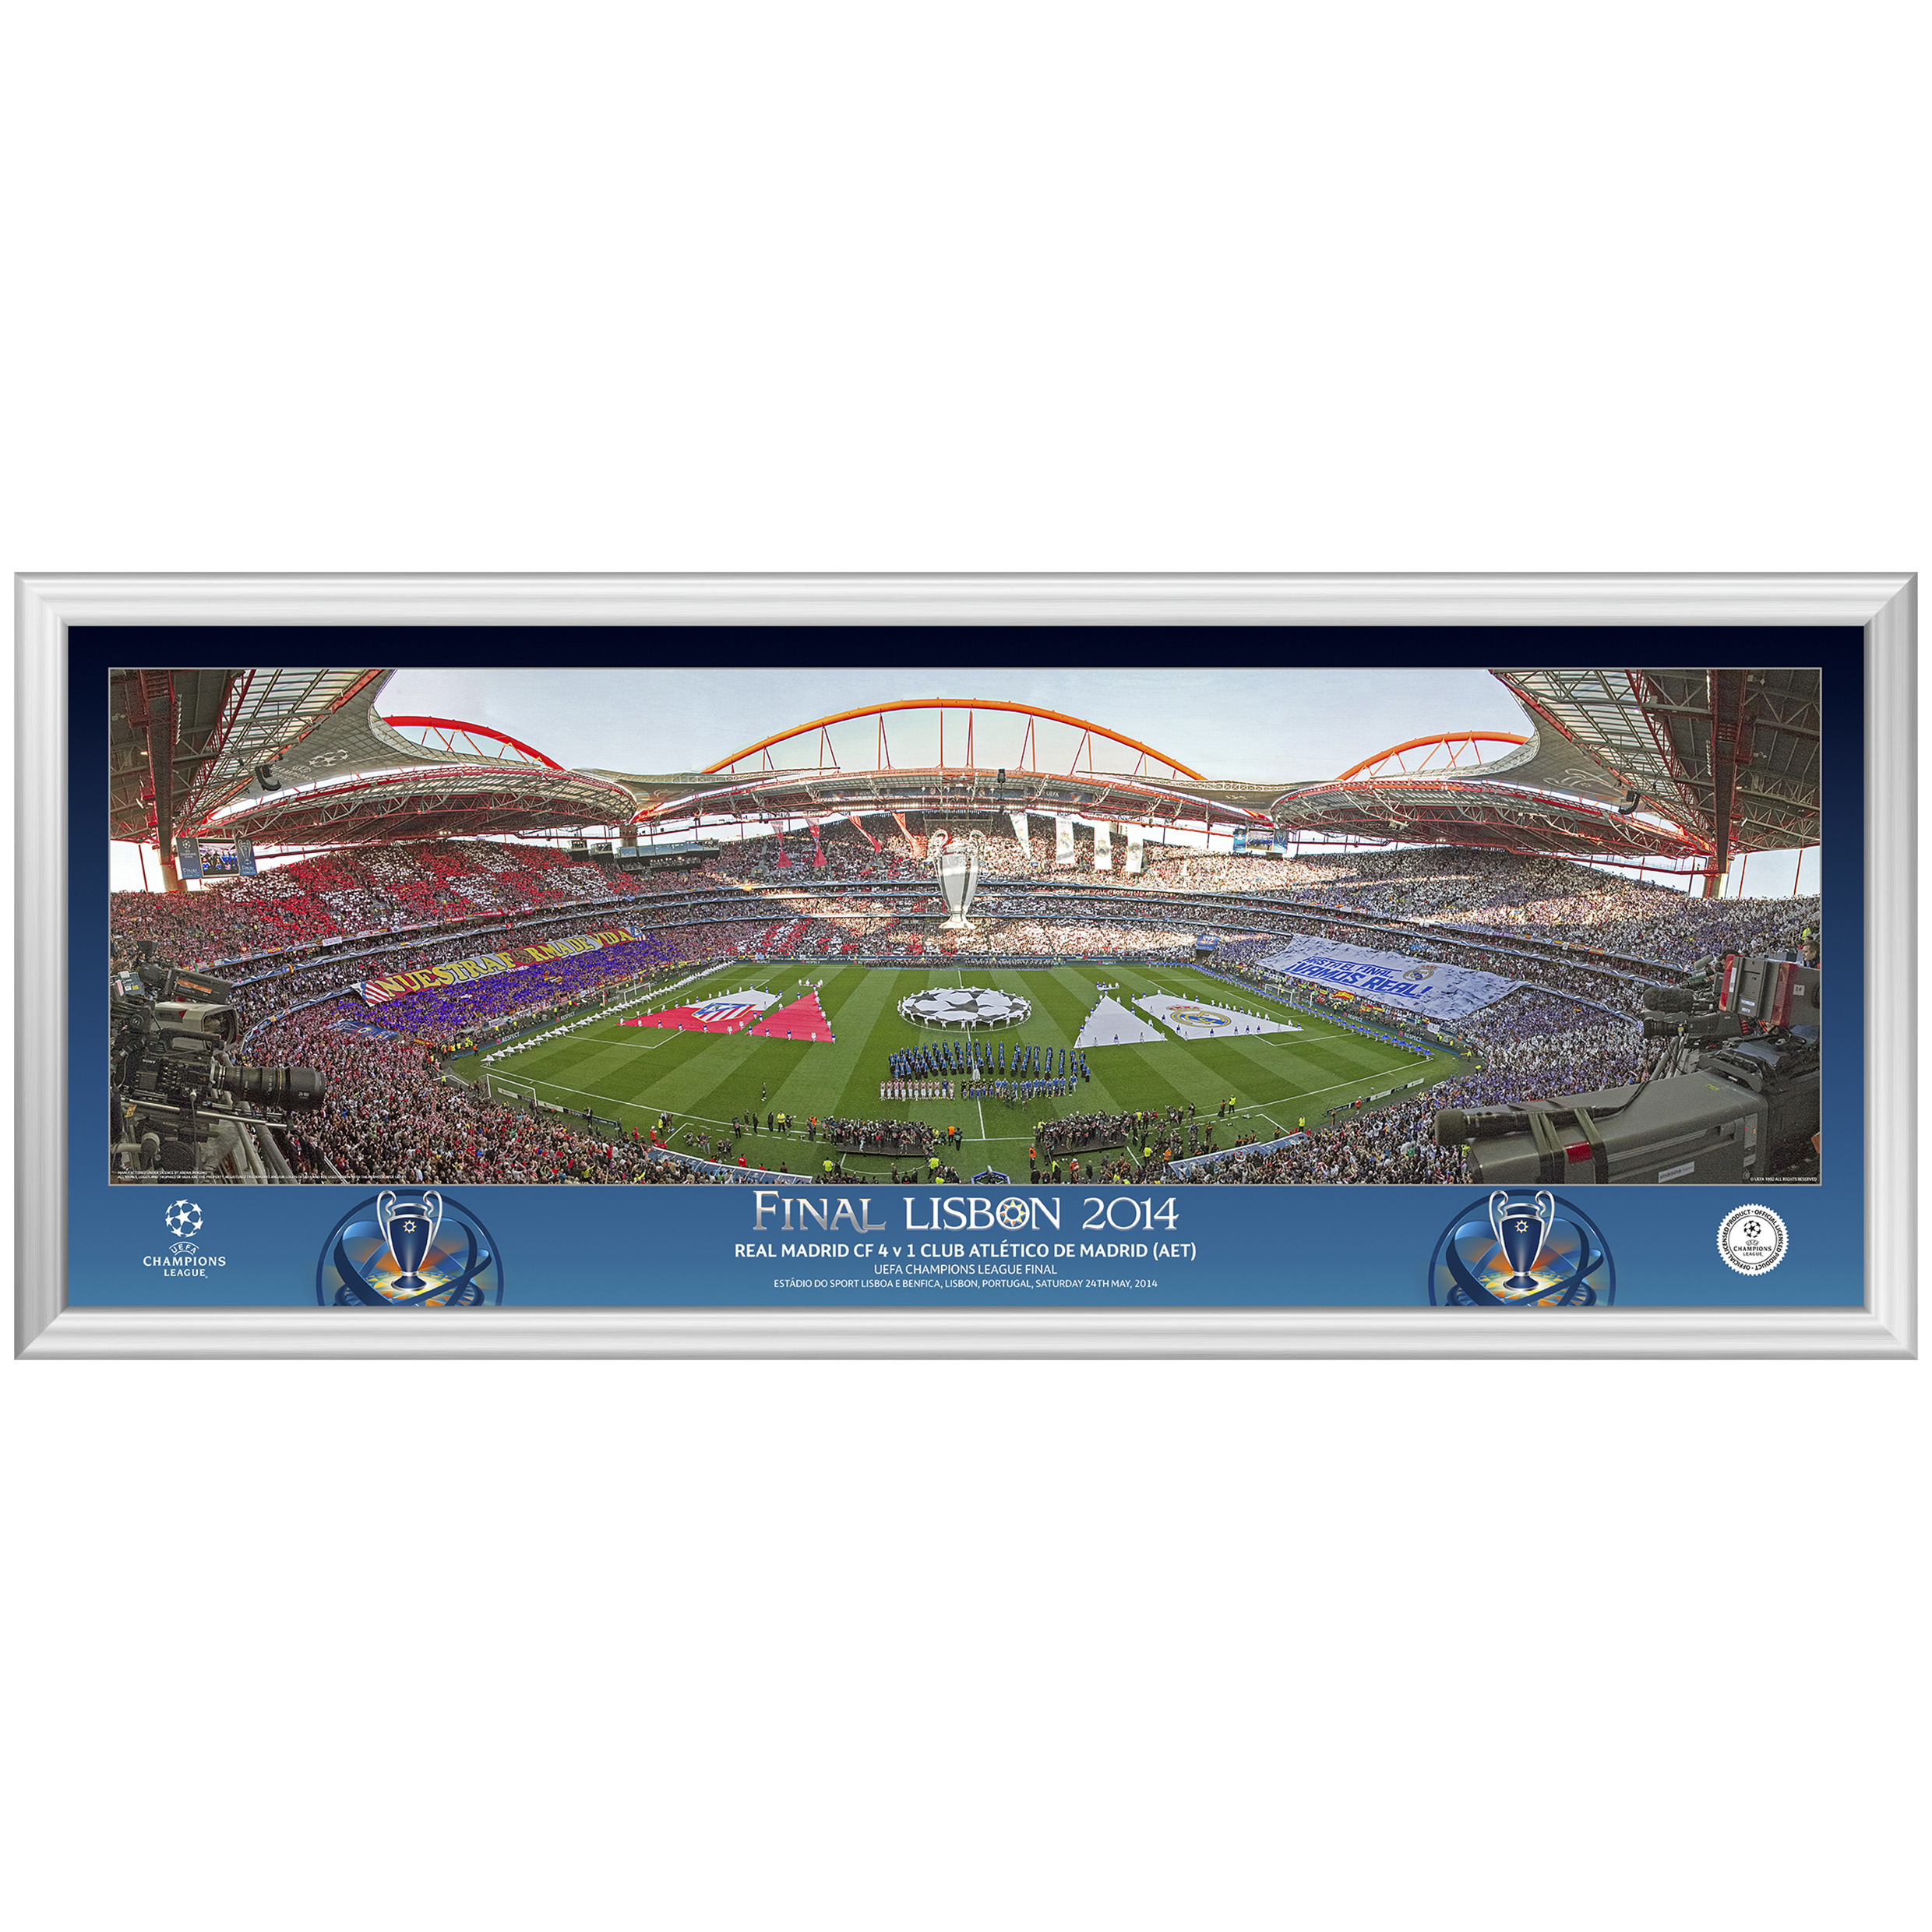 UEFA Champions League Final 2014 Line Up Panoramic Print - 30 x 12 Inch